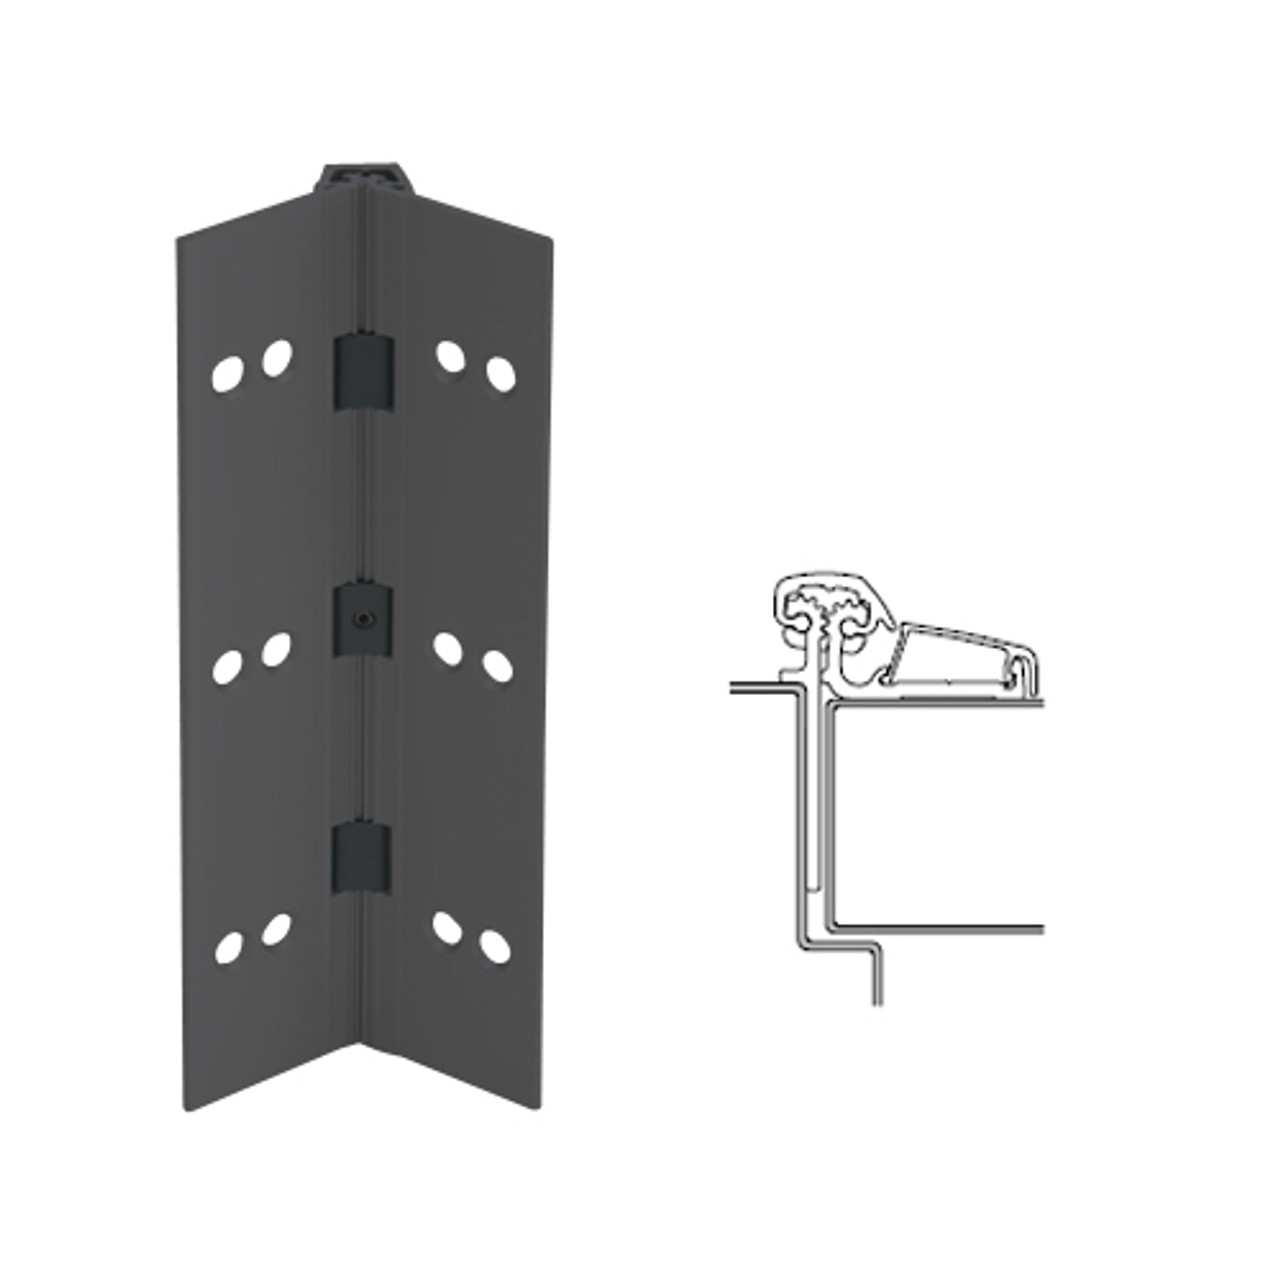 053XY-315AN-83-TEKWD IVES Adjustable Half Surface Continuous Geared Hinges with Wood Screws in Anodized Black